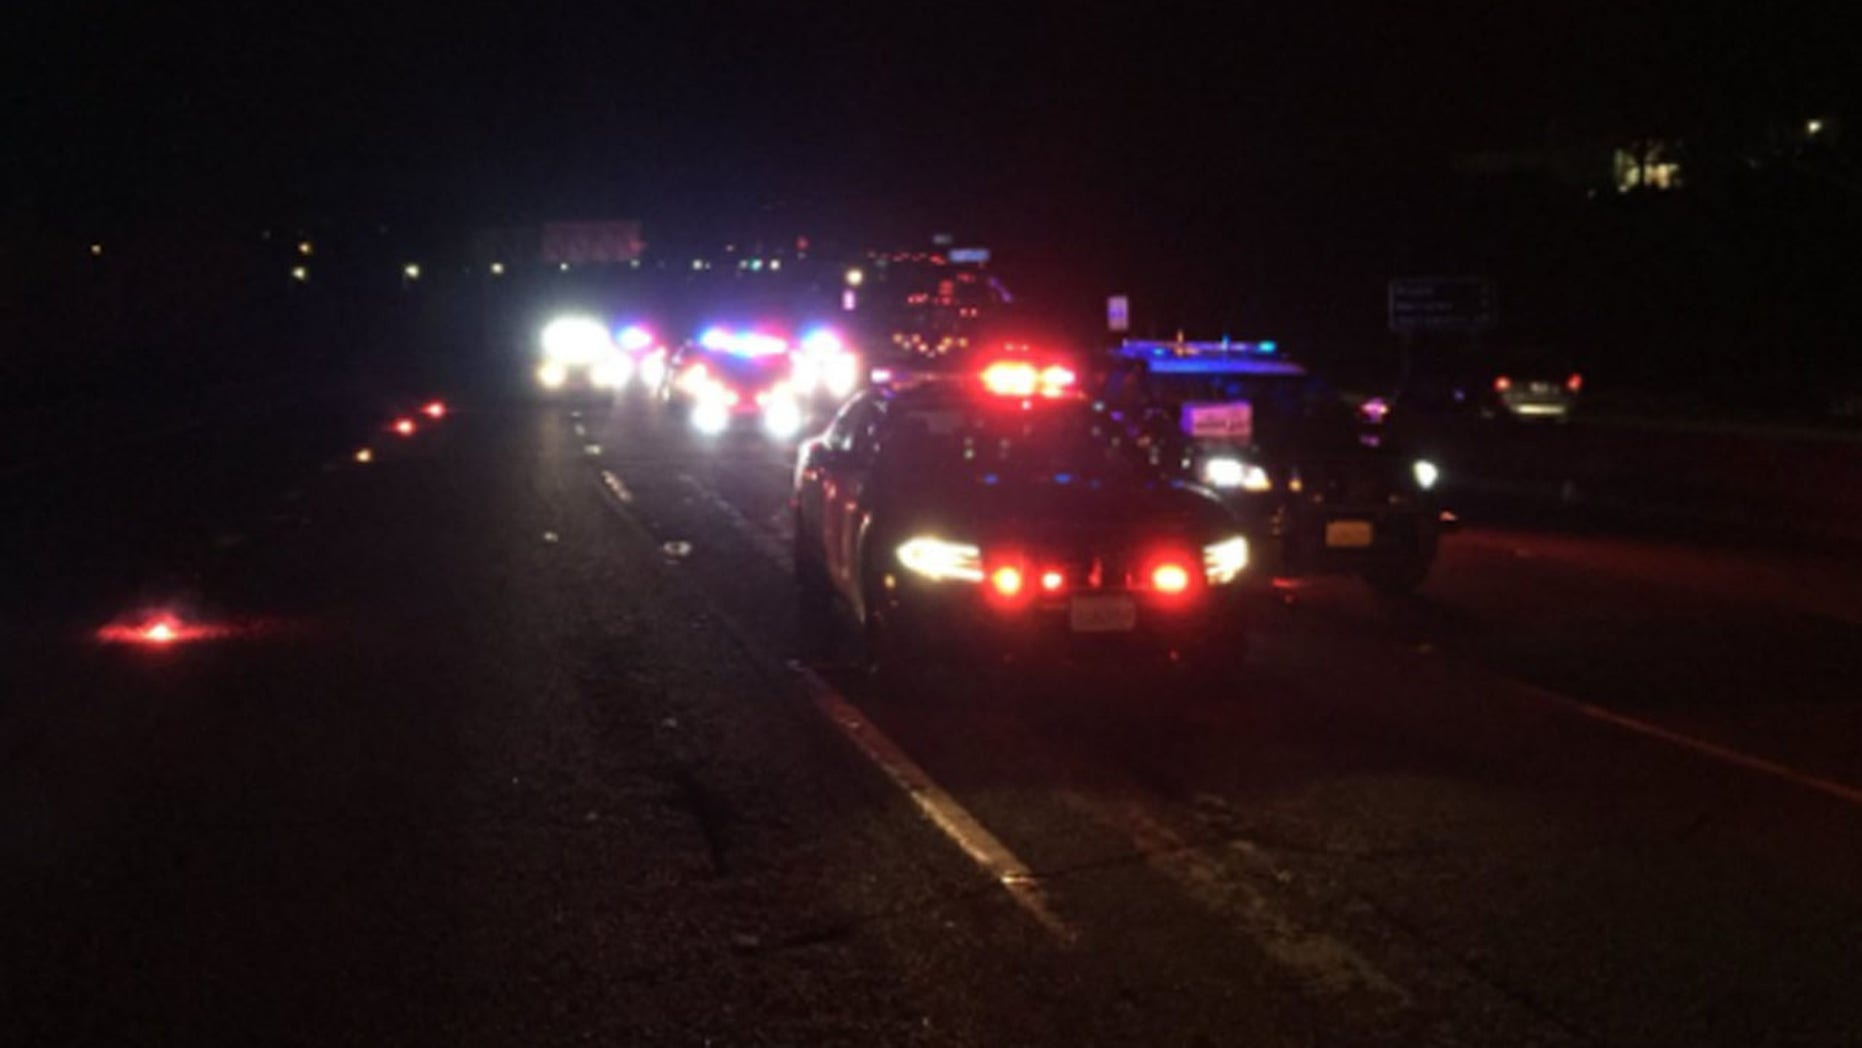 Nov. 26: Four people were pronounced dead on scene at Interstate 80 in the San Francisco , 5 others transported for injuries.